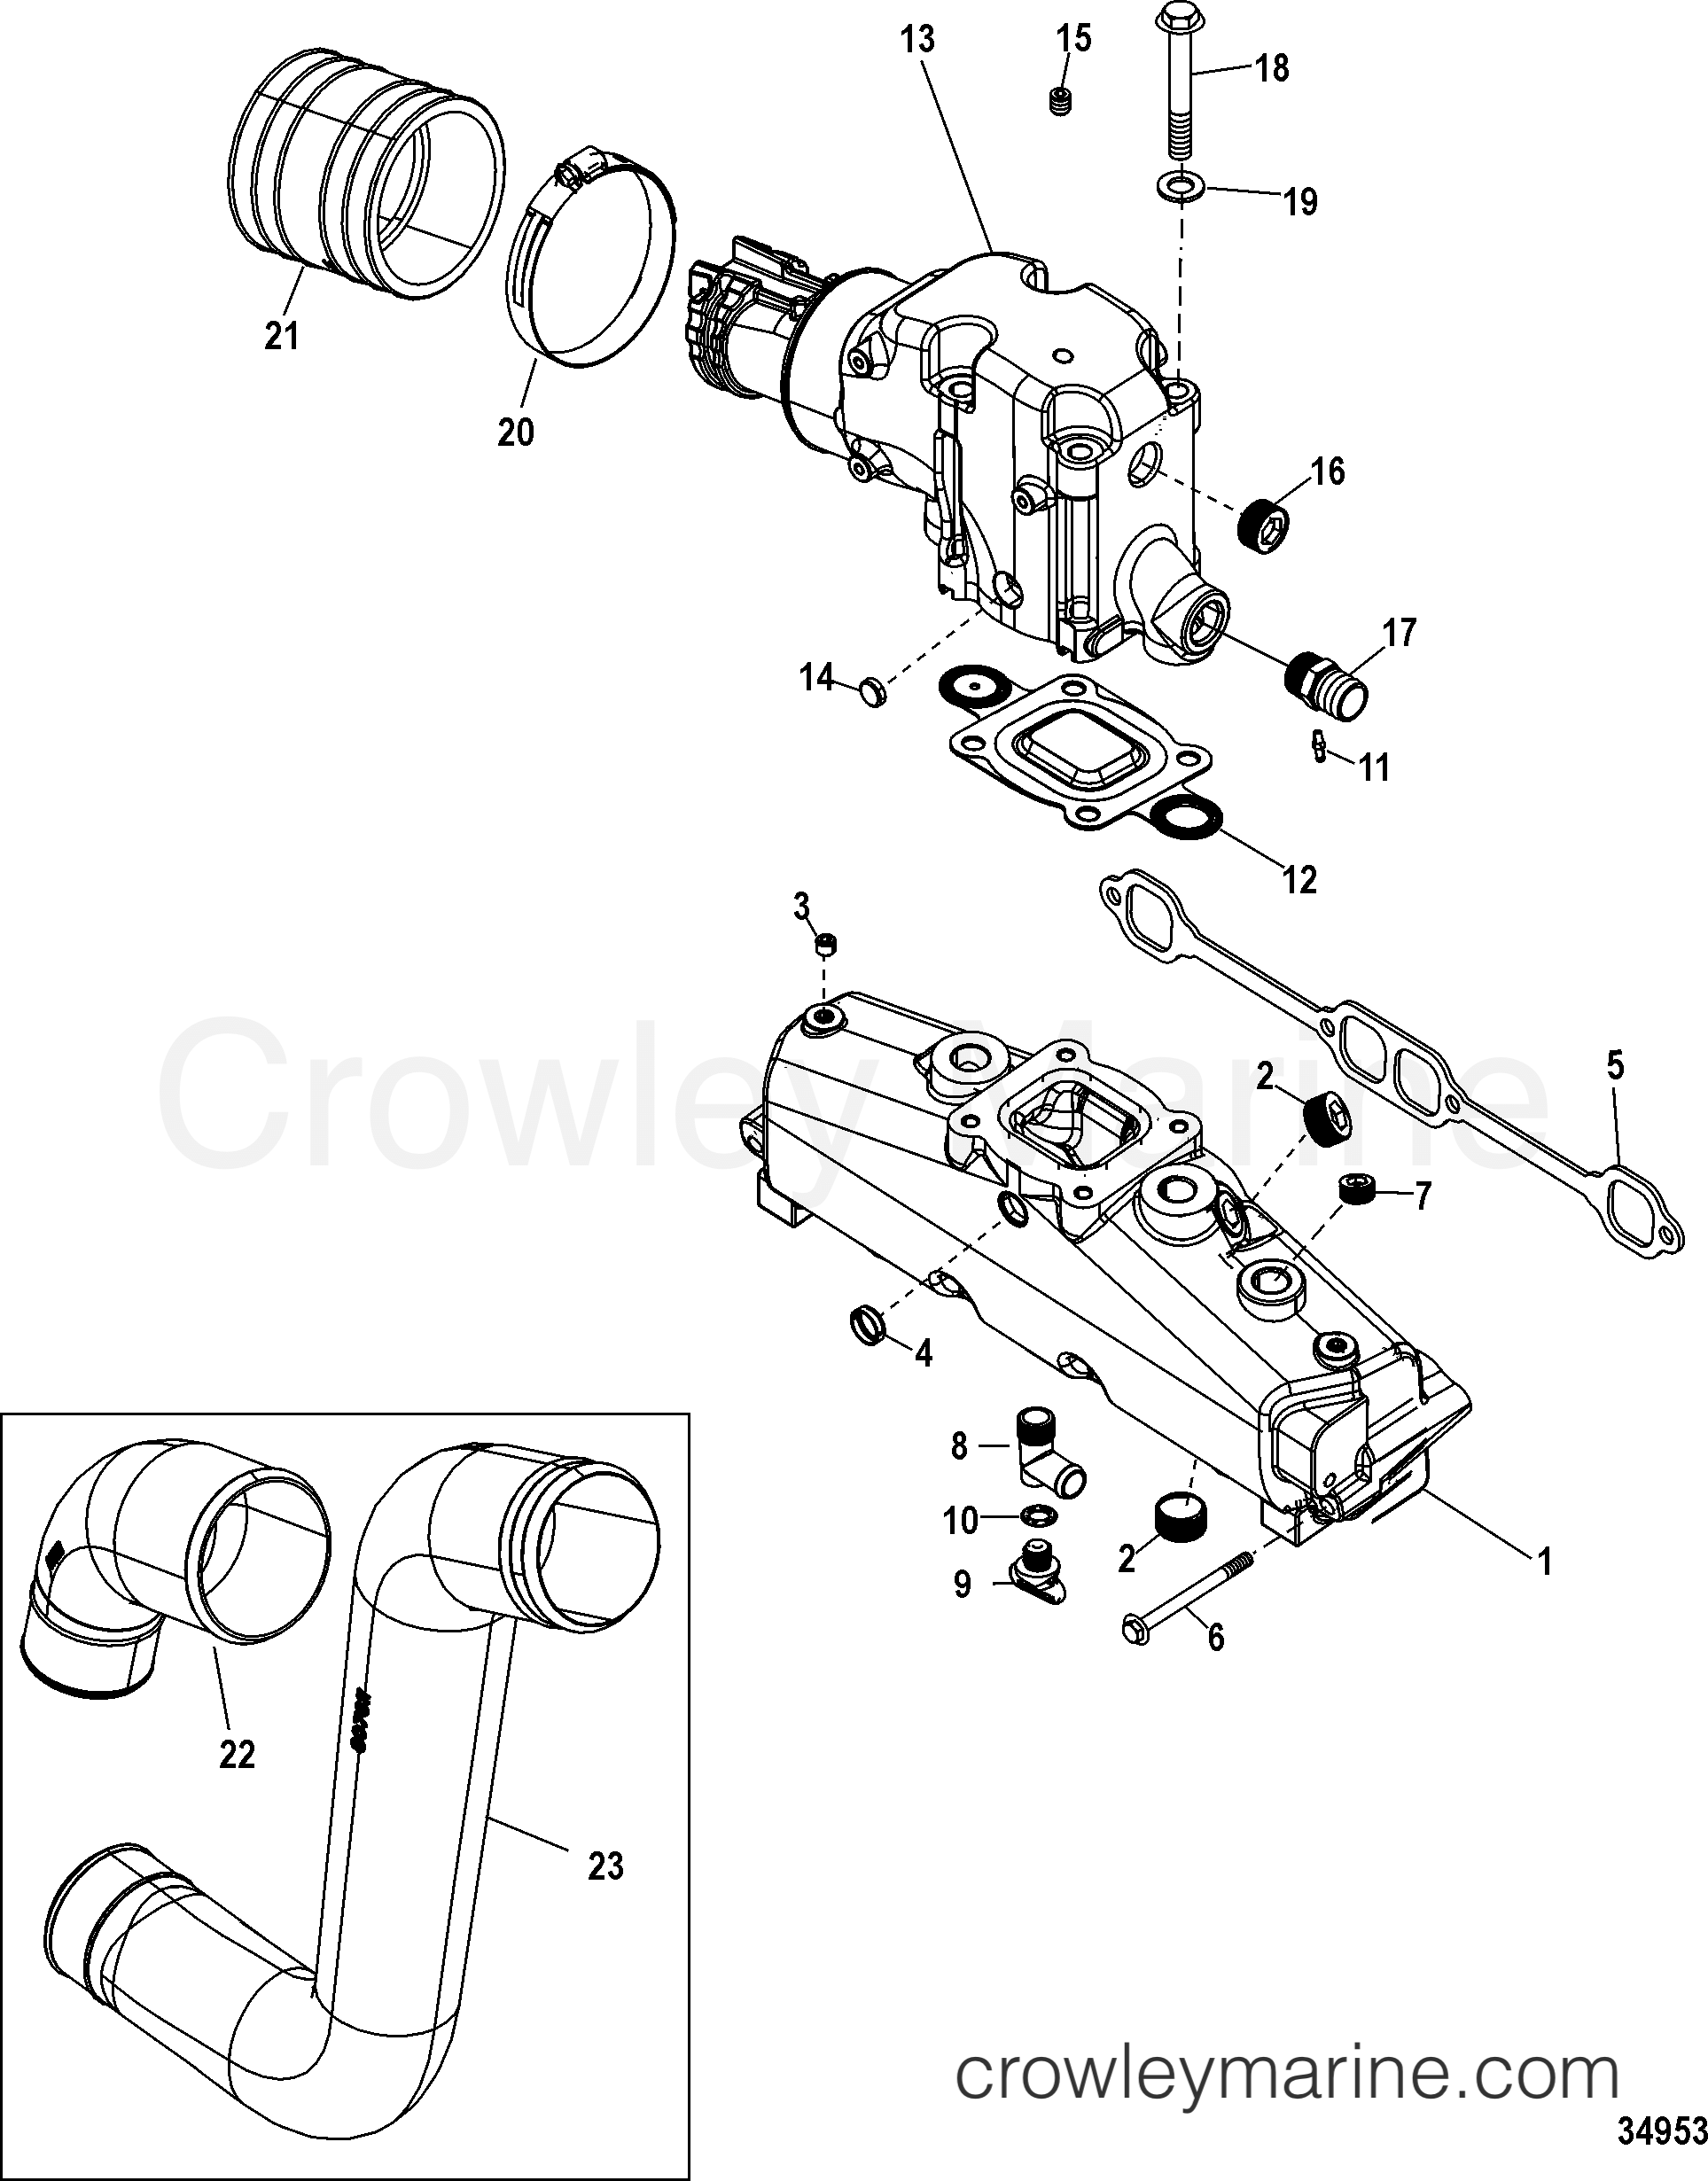 Exhaust Manifold Elbow And Pipes